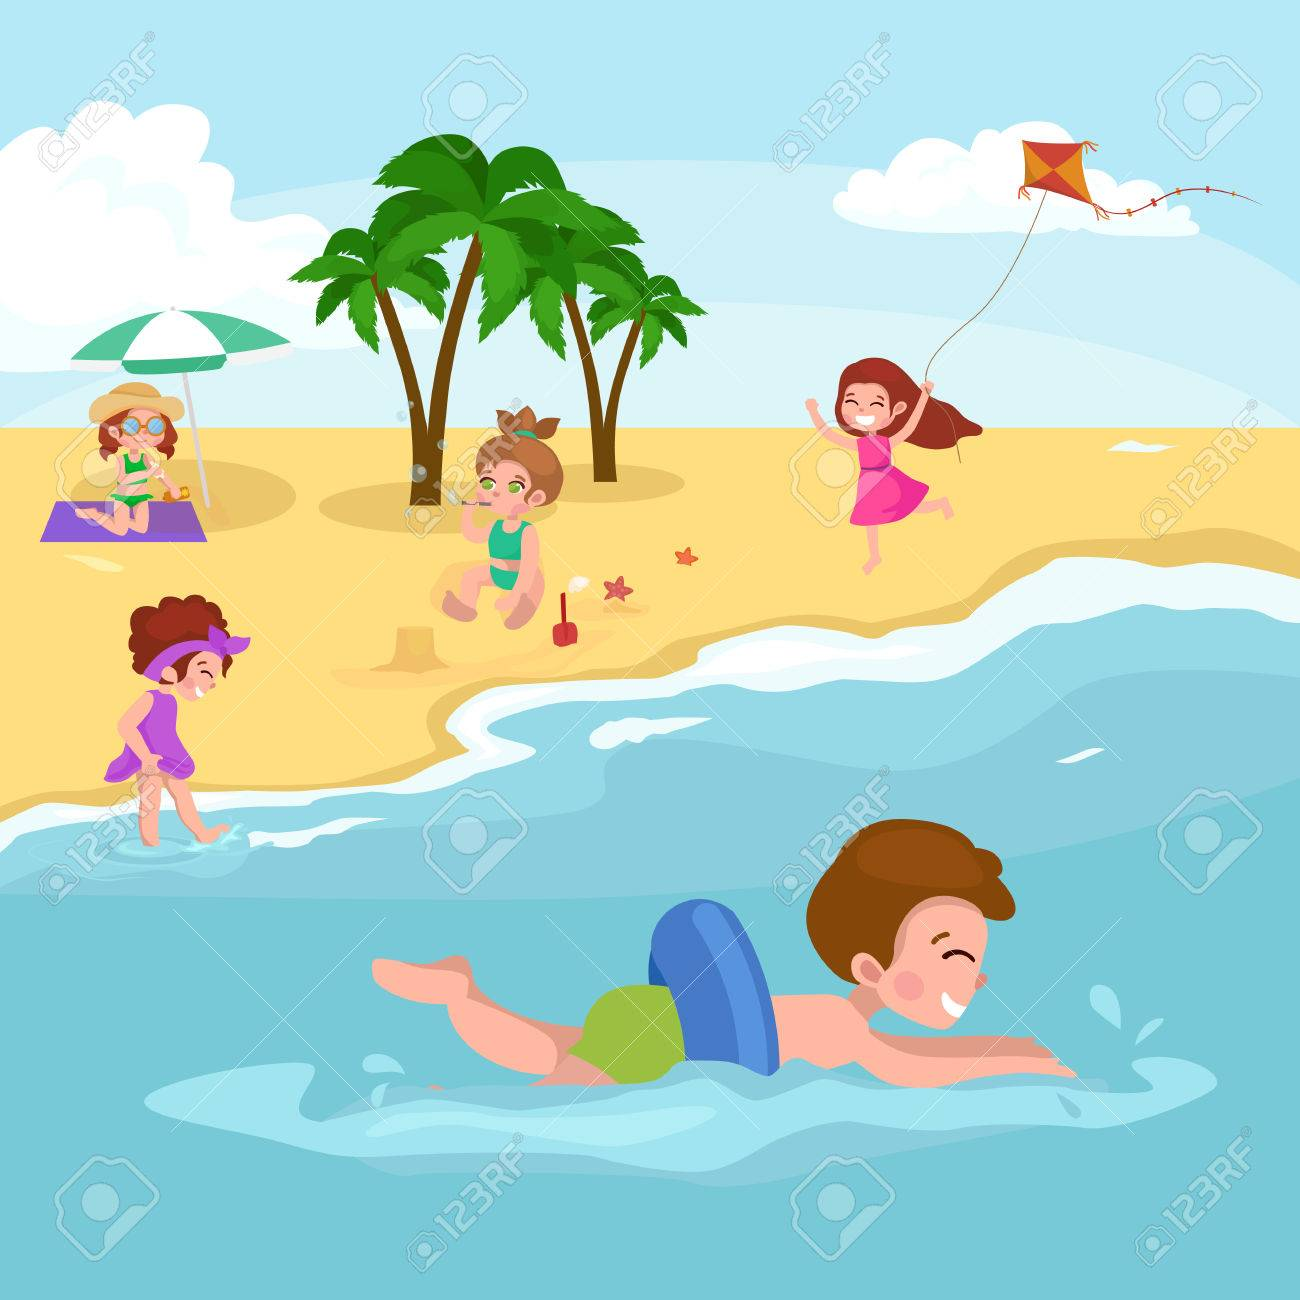 Summer children. Children playing in the sand on the beach vector illustration - 57030363